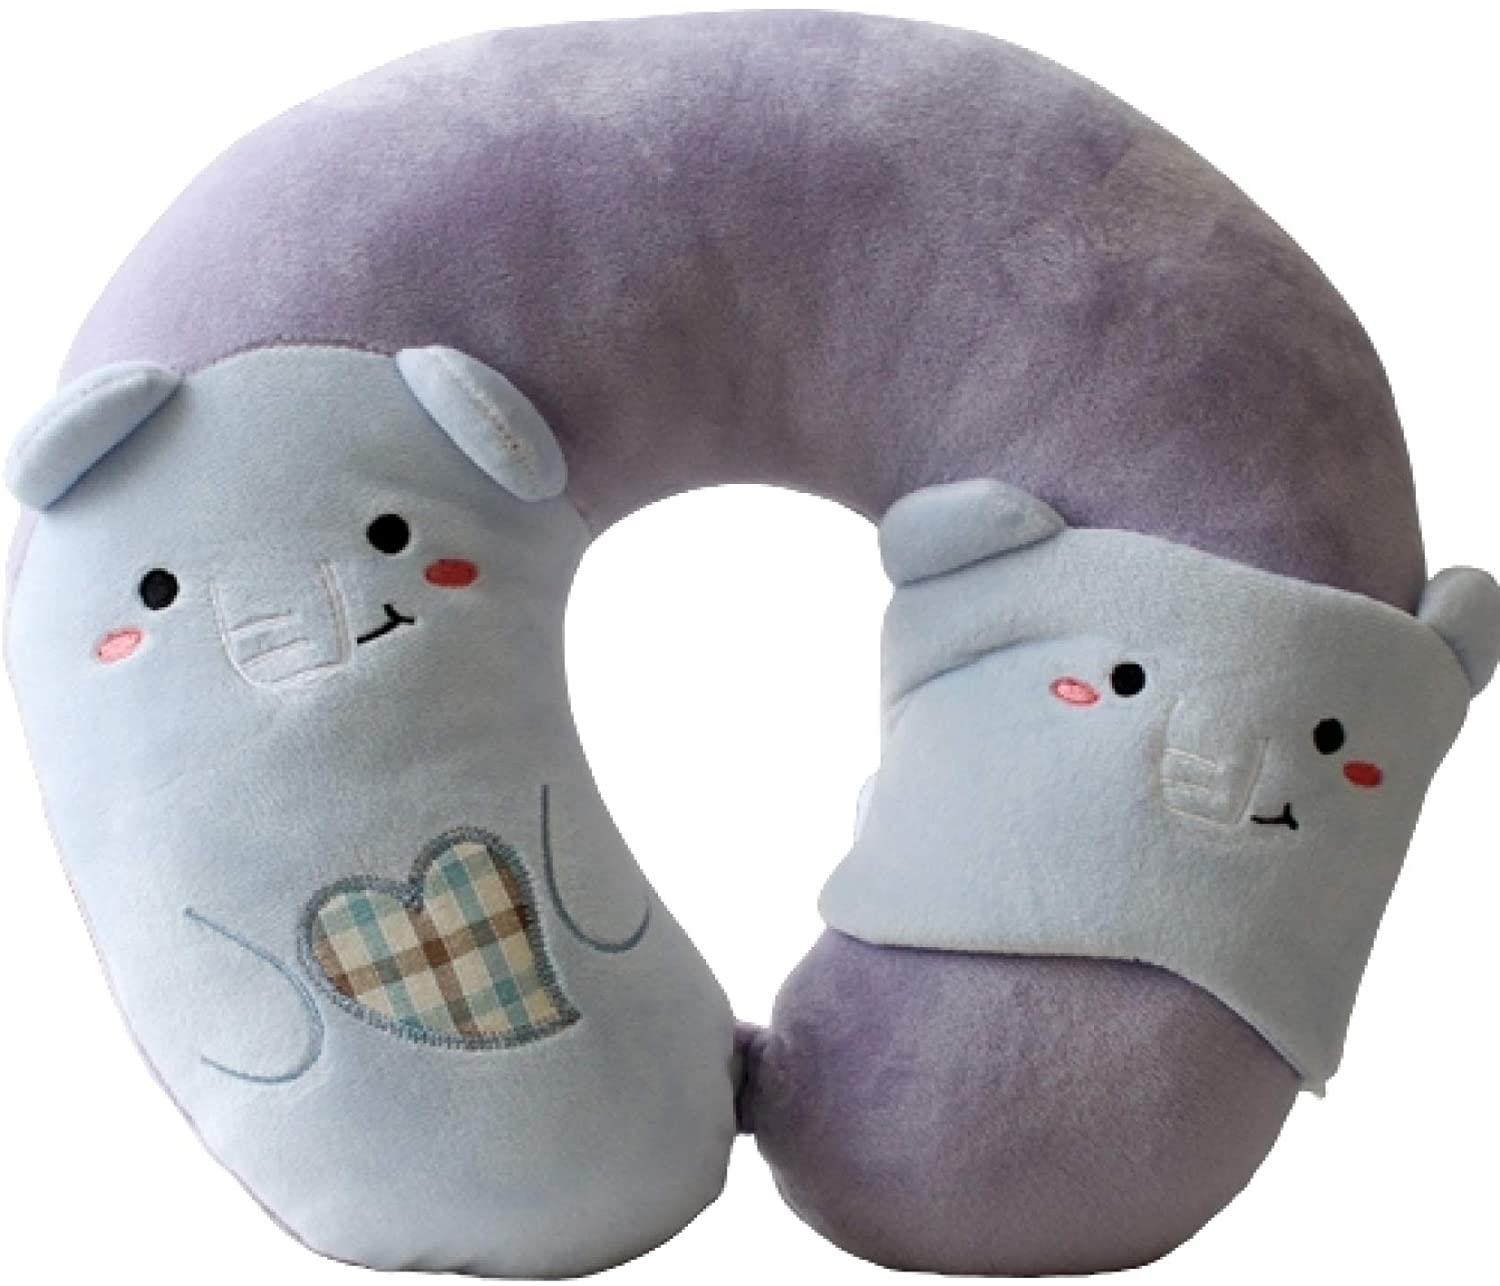 UKURO Travel Neck Pillows Convenience U-Shaped Animal Neck Pillows for Airplane Car Road Trips Bus Train or at Home